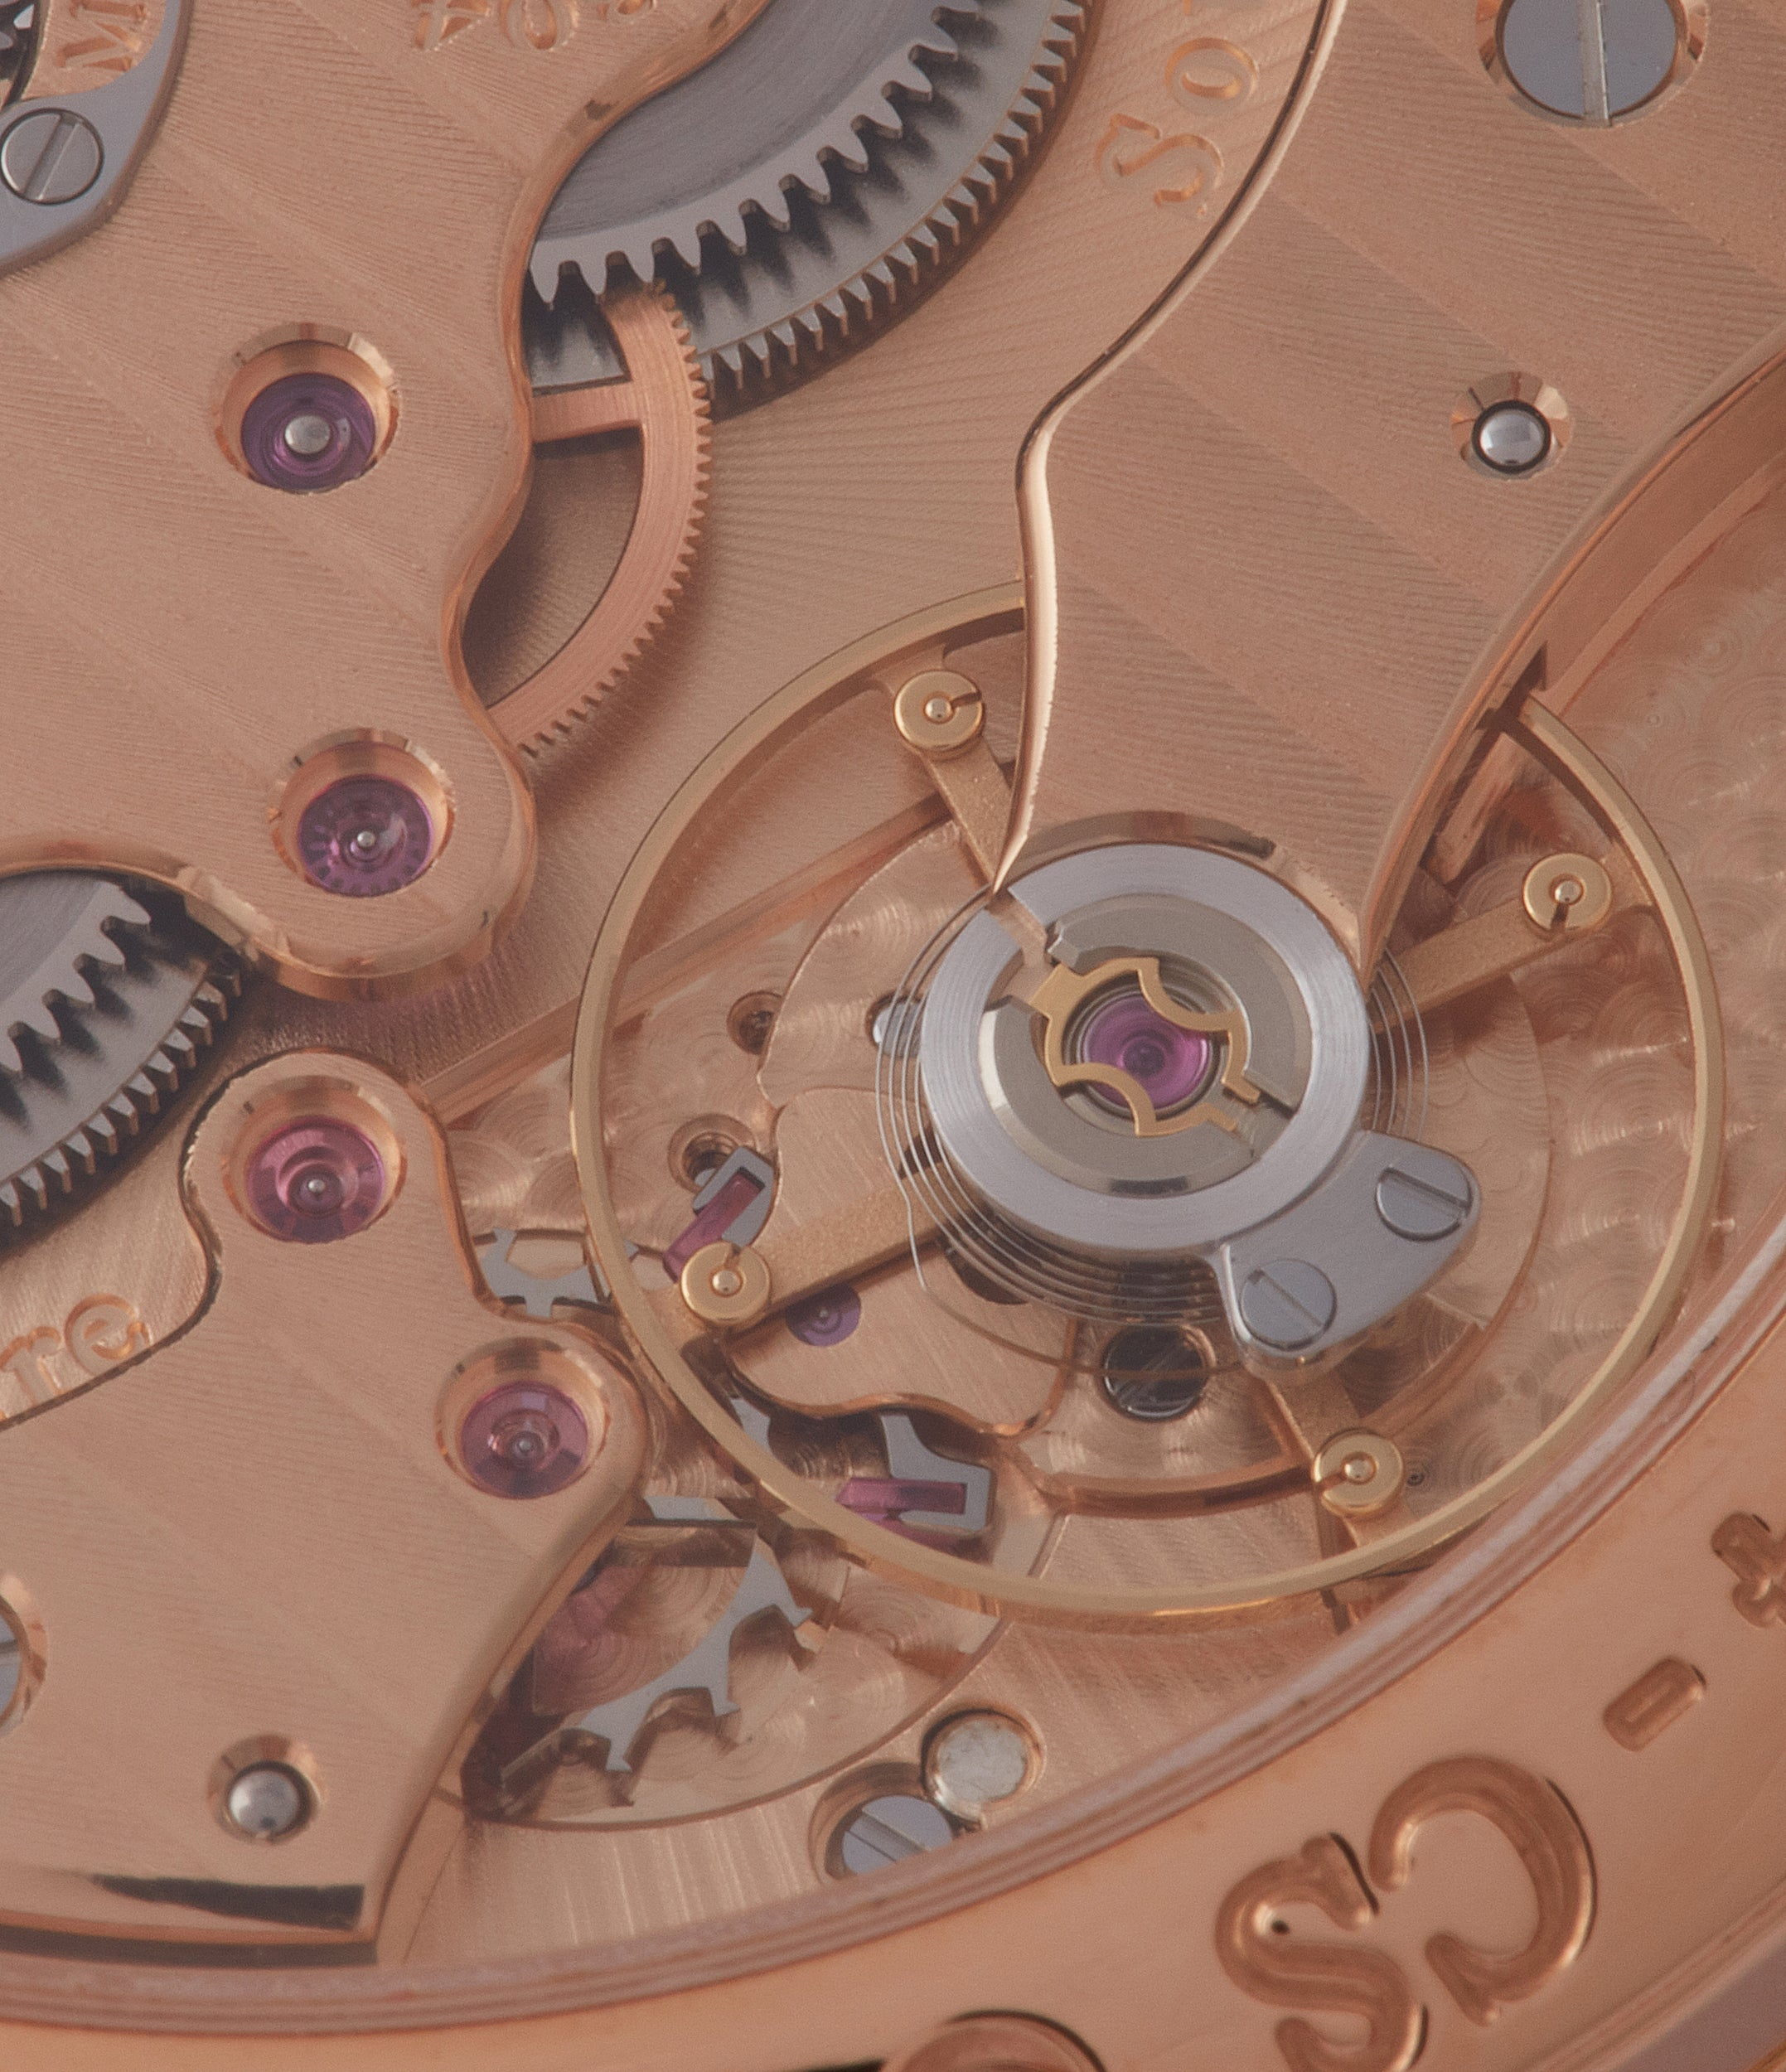 rose gold movement F. P. Journe Chronometre Souverain CS.RG.38 rose gold silver dial watch for sale online at A Collected Man London UK specialist of rare watches